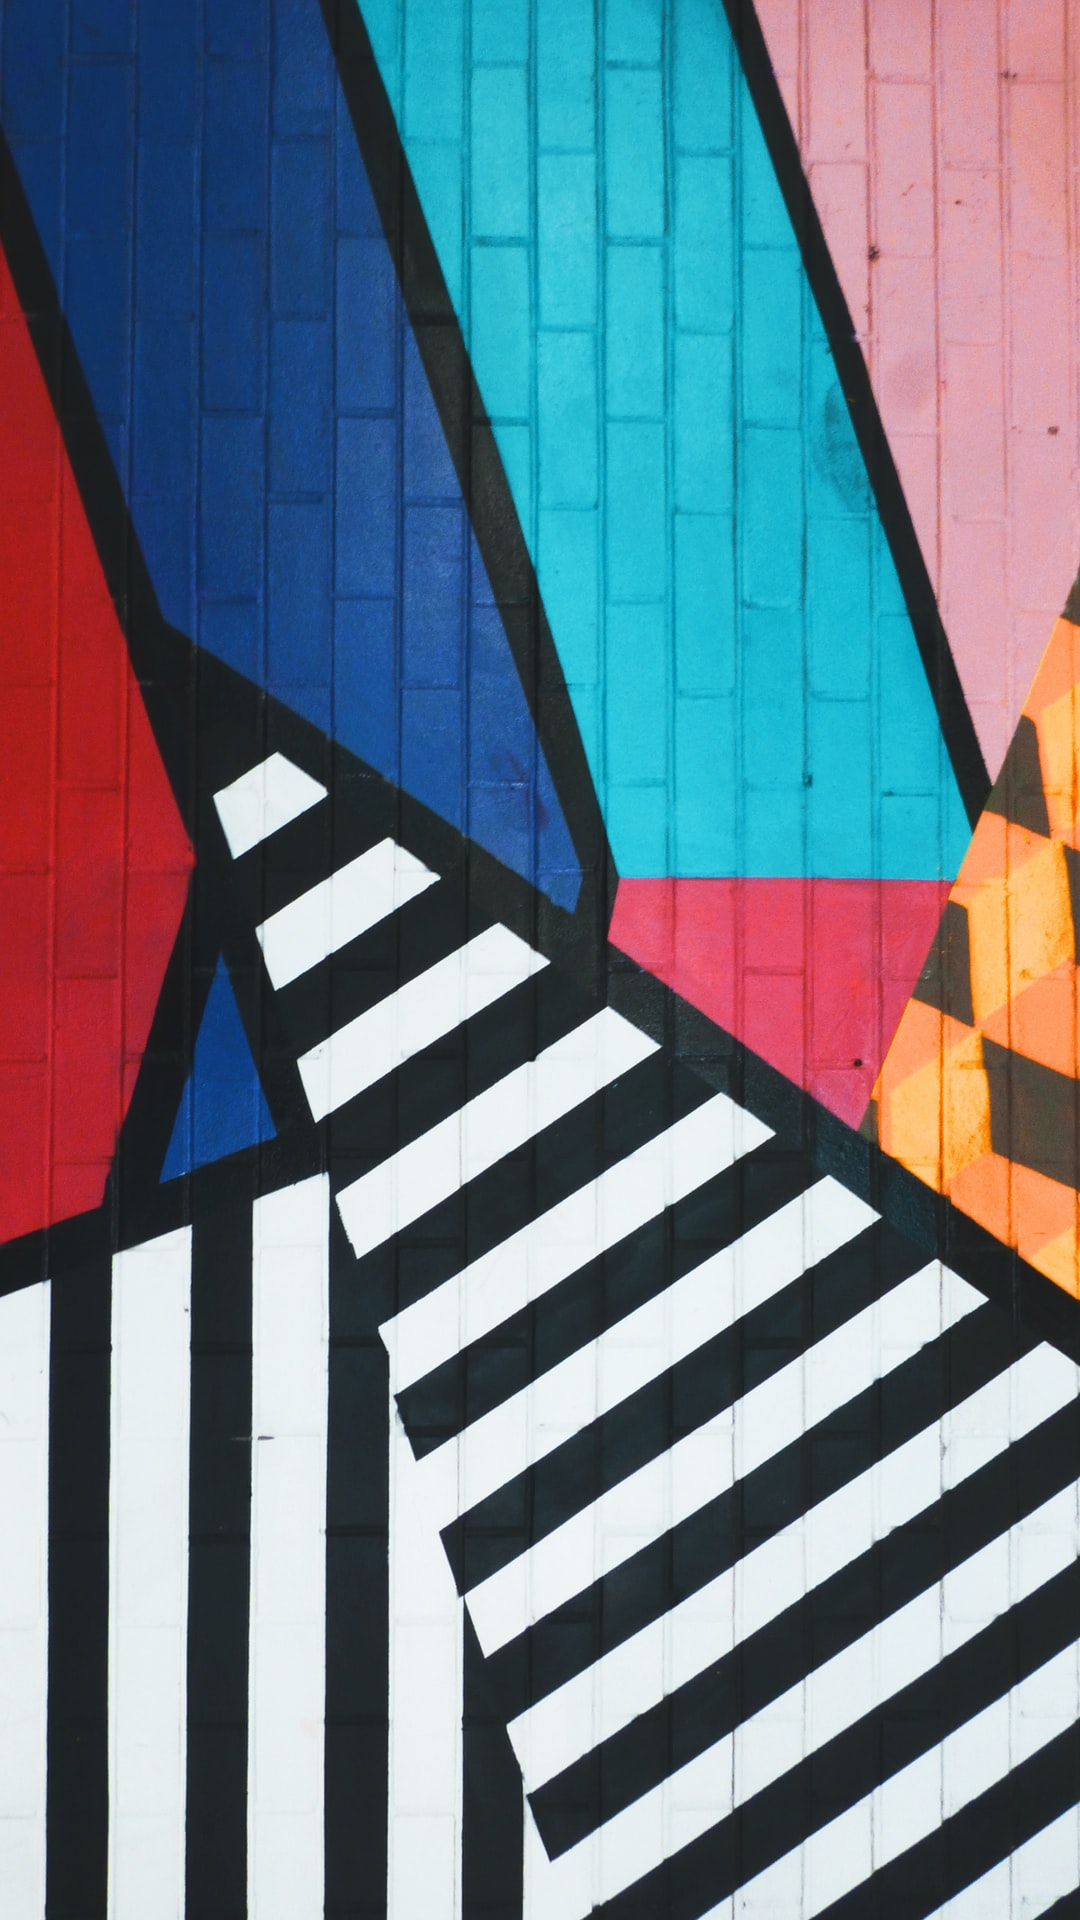 Street Art Pictures [HD] | Download Free Images on Unsplash